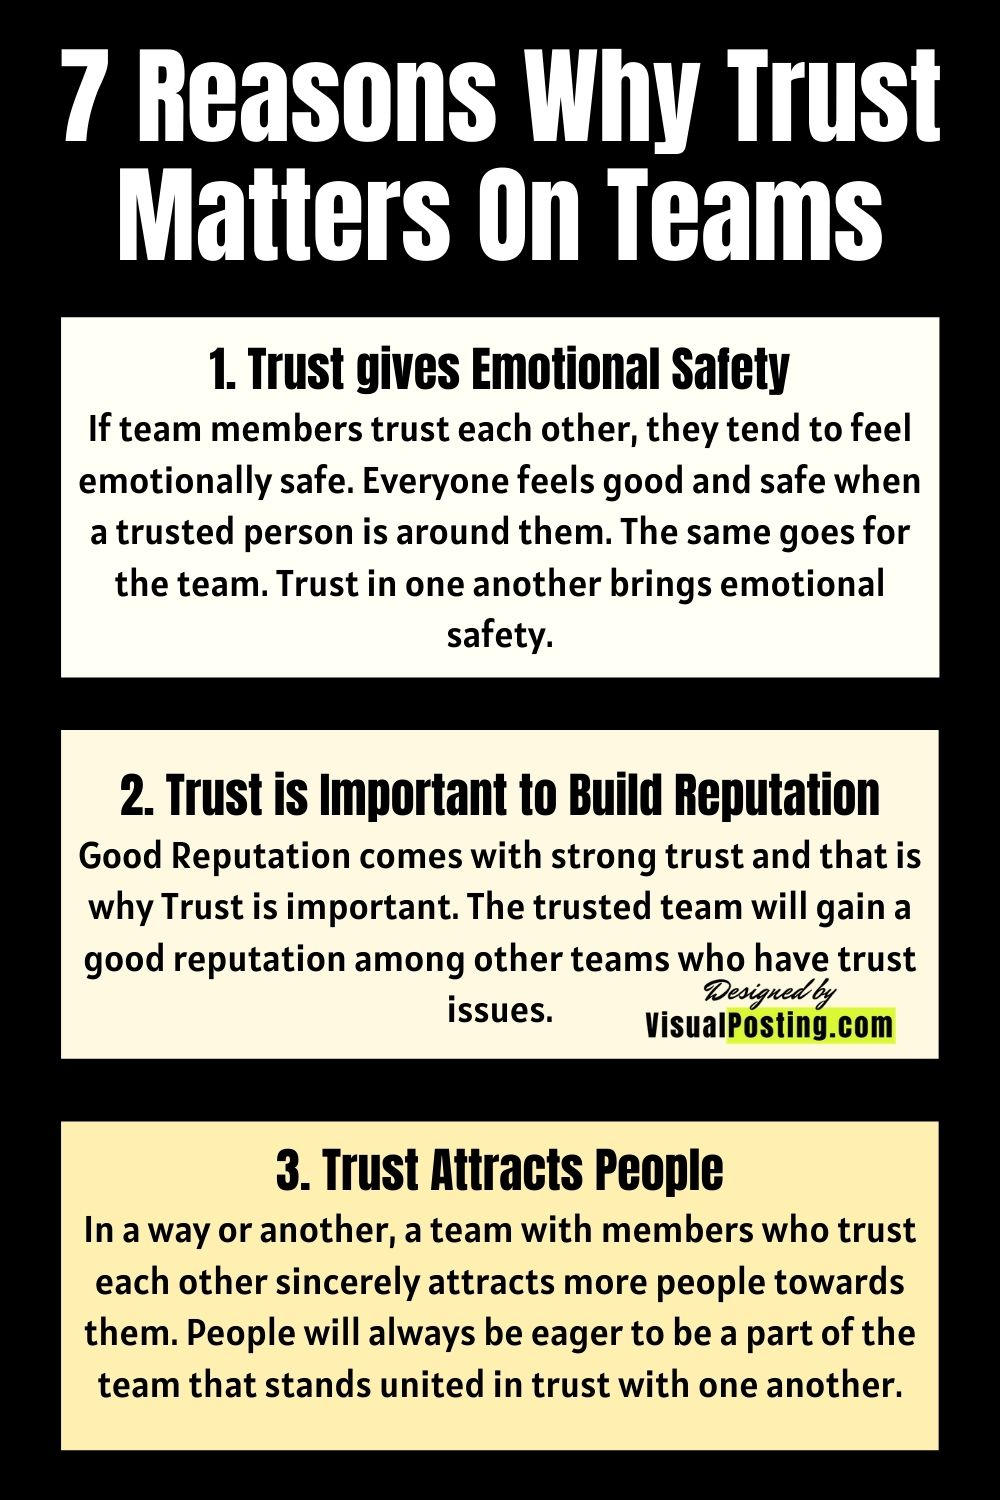 7 reasons why trust matters on teams.jpg